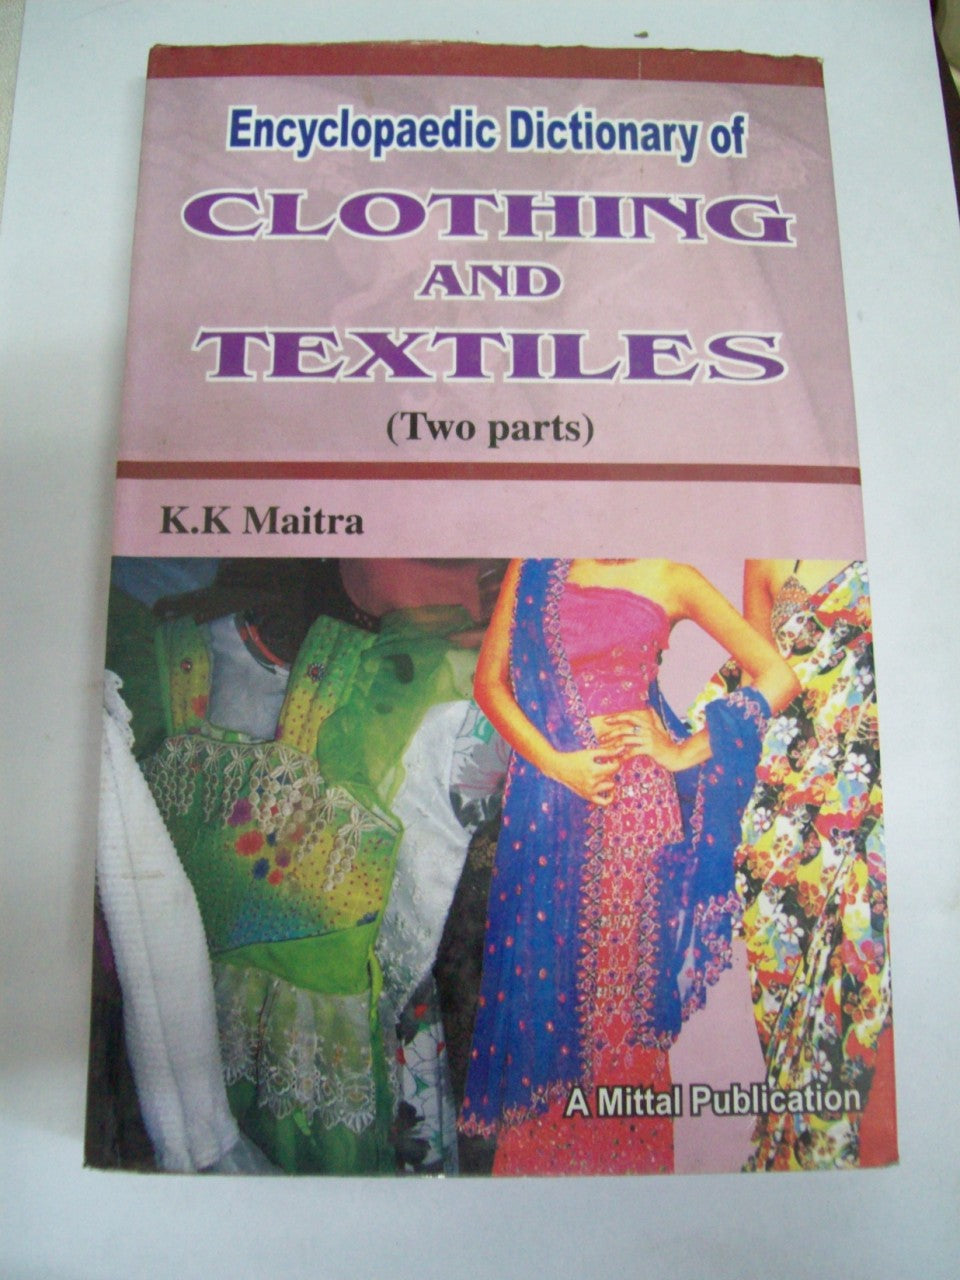 Encyclopaedic Dictionary of Clothing And Textiles (2 Parts)